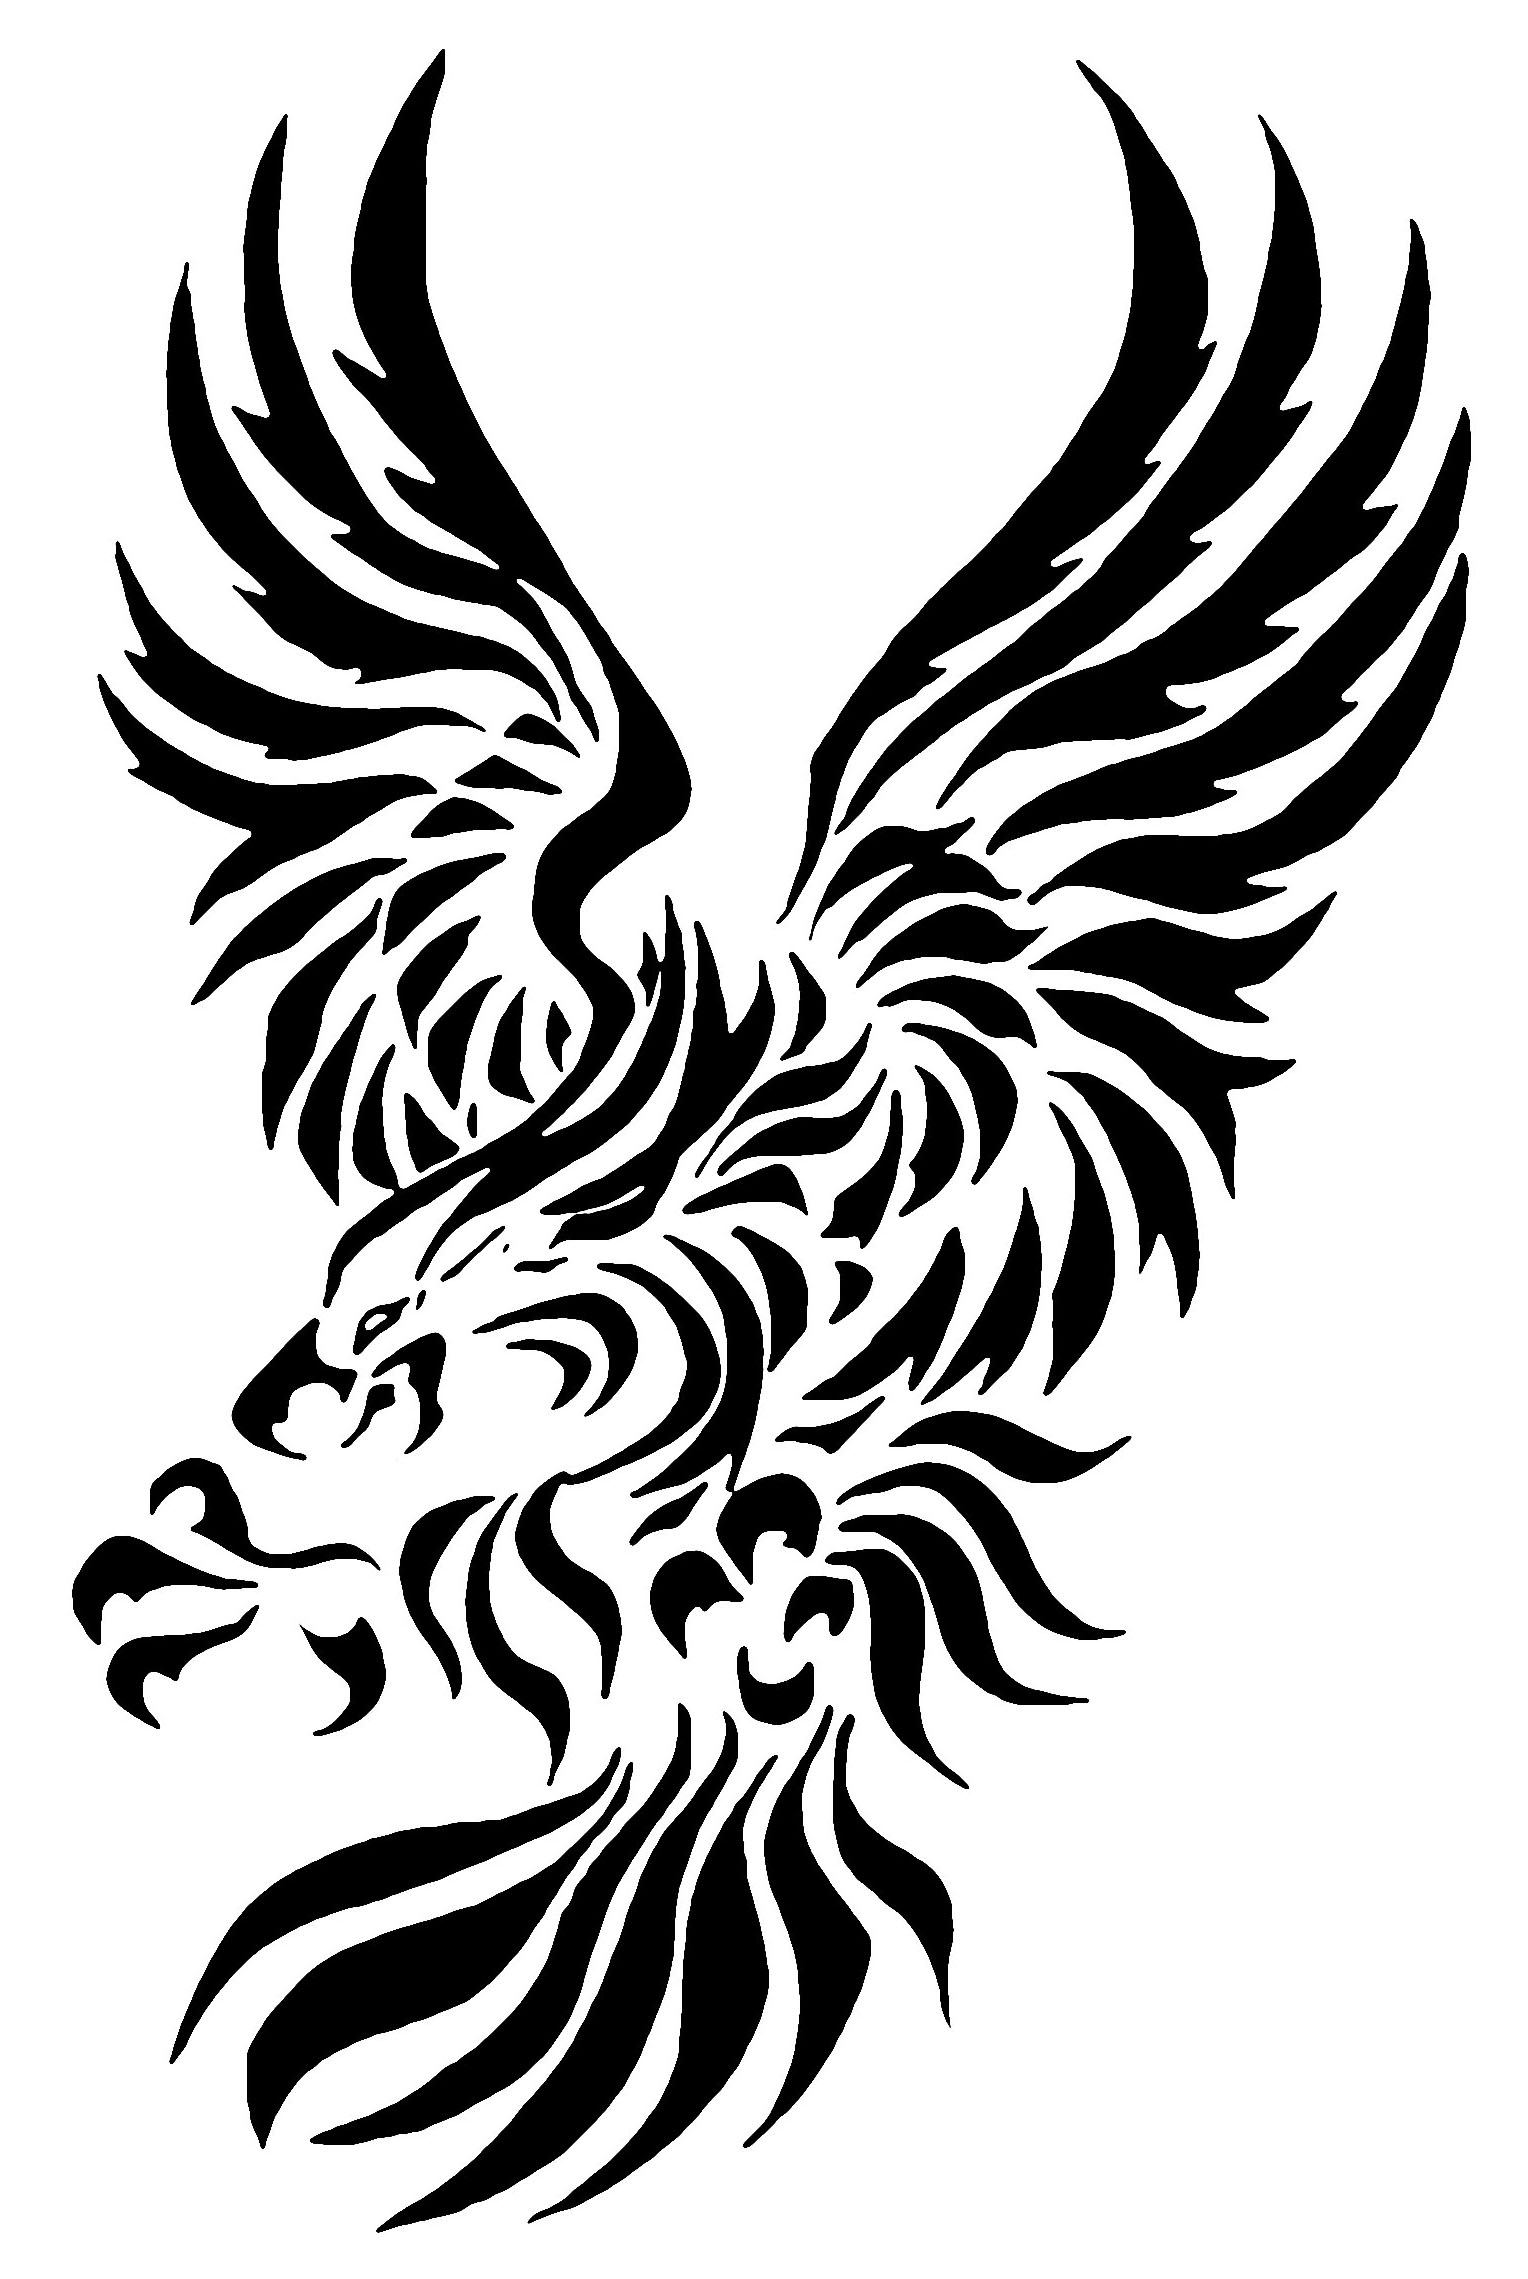 Tribal Eagle Tattoos - Designs and Ideas